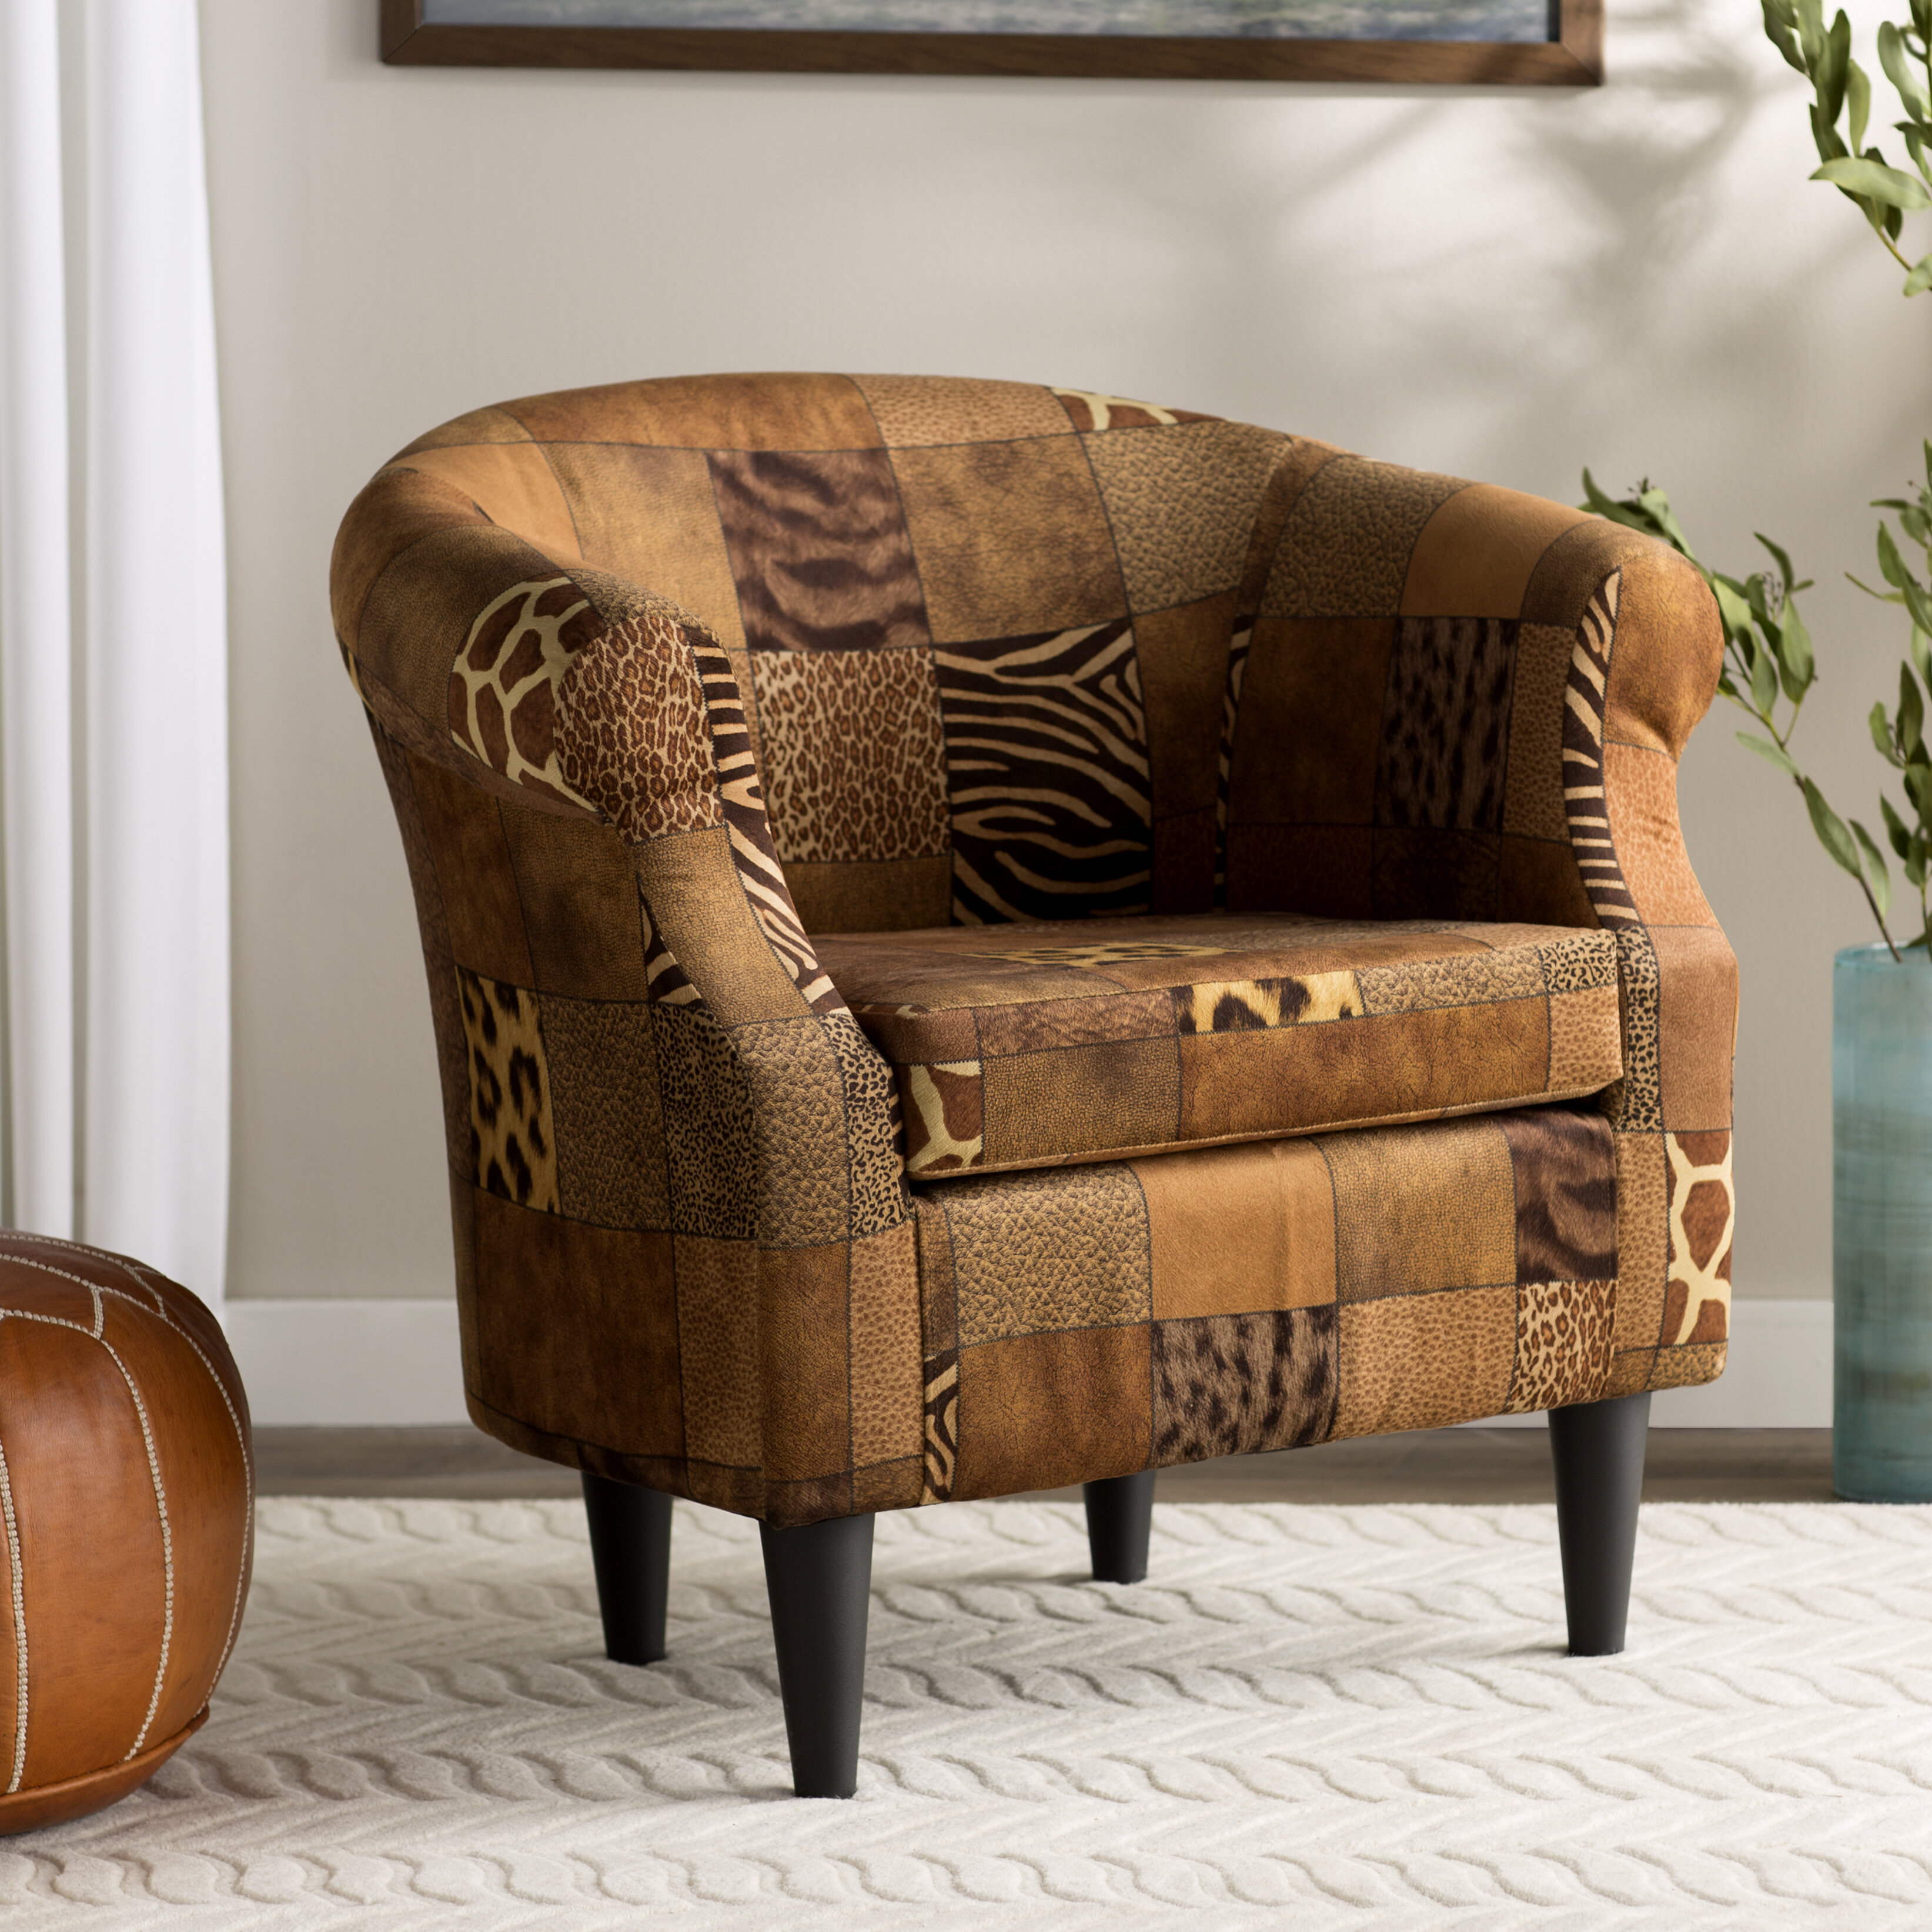 Tapestry Throw Blanket Accent Chairs You Ll Love In 2021 Wayfair